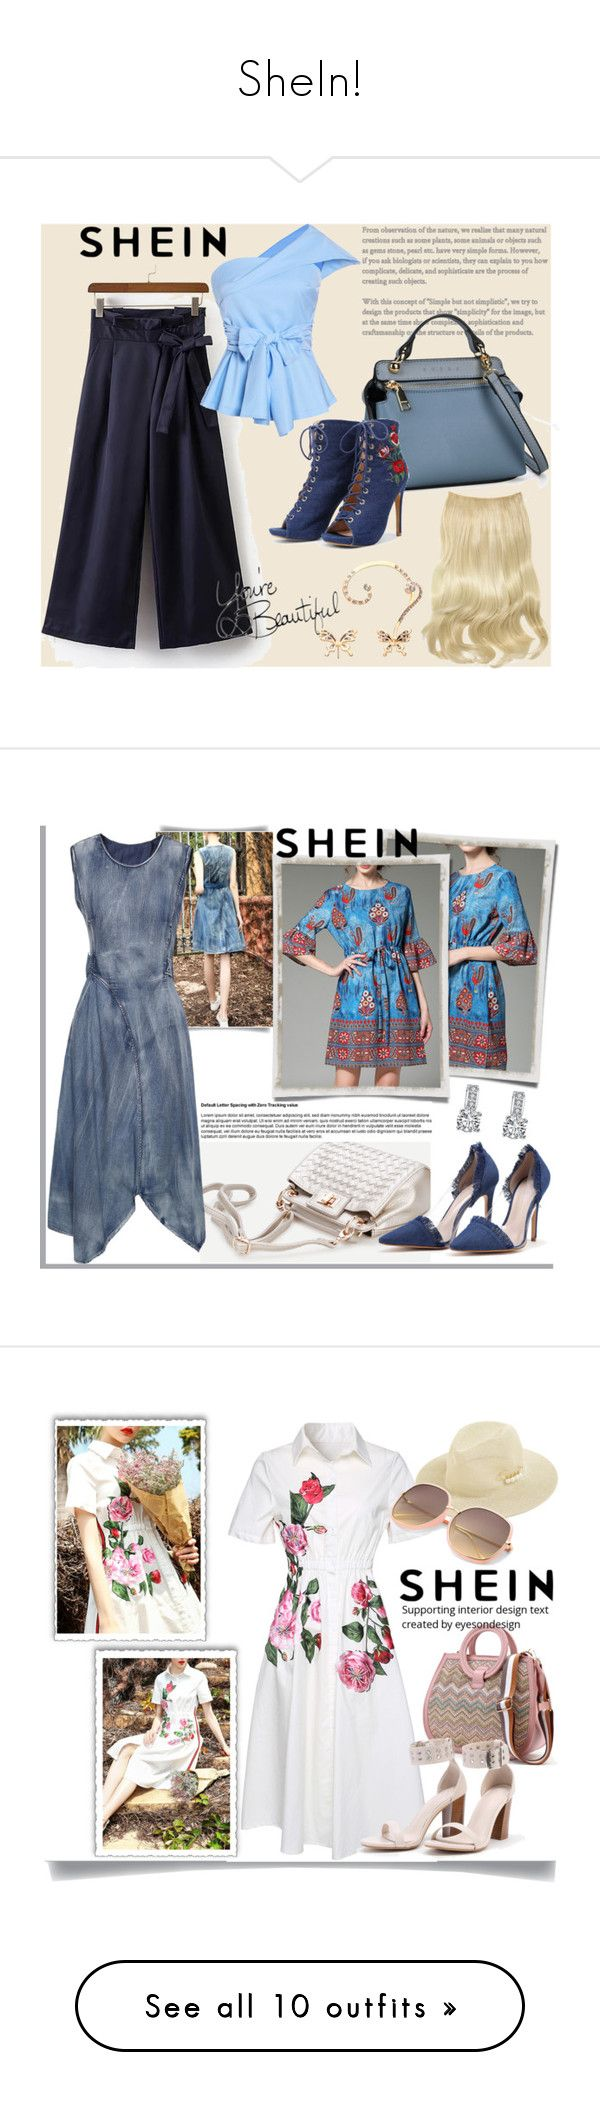 """""""SheIn!"""" by mery-2601 ❤ liked on Polyvore featuring Summer, modern, Trendy, onlineshopping, shein, WithChic, Daum and Hedi Slimane"""